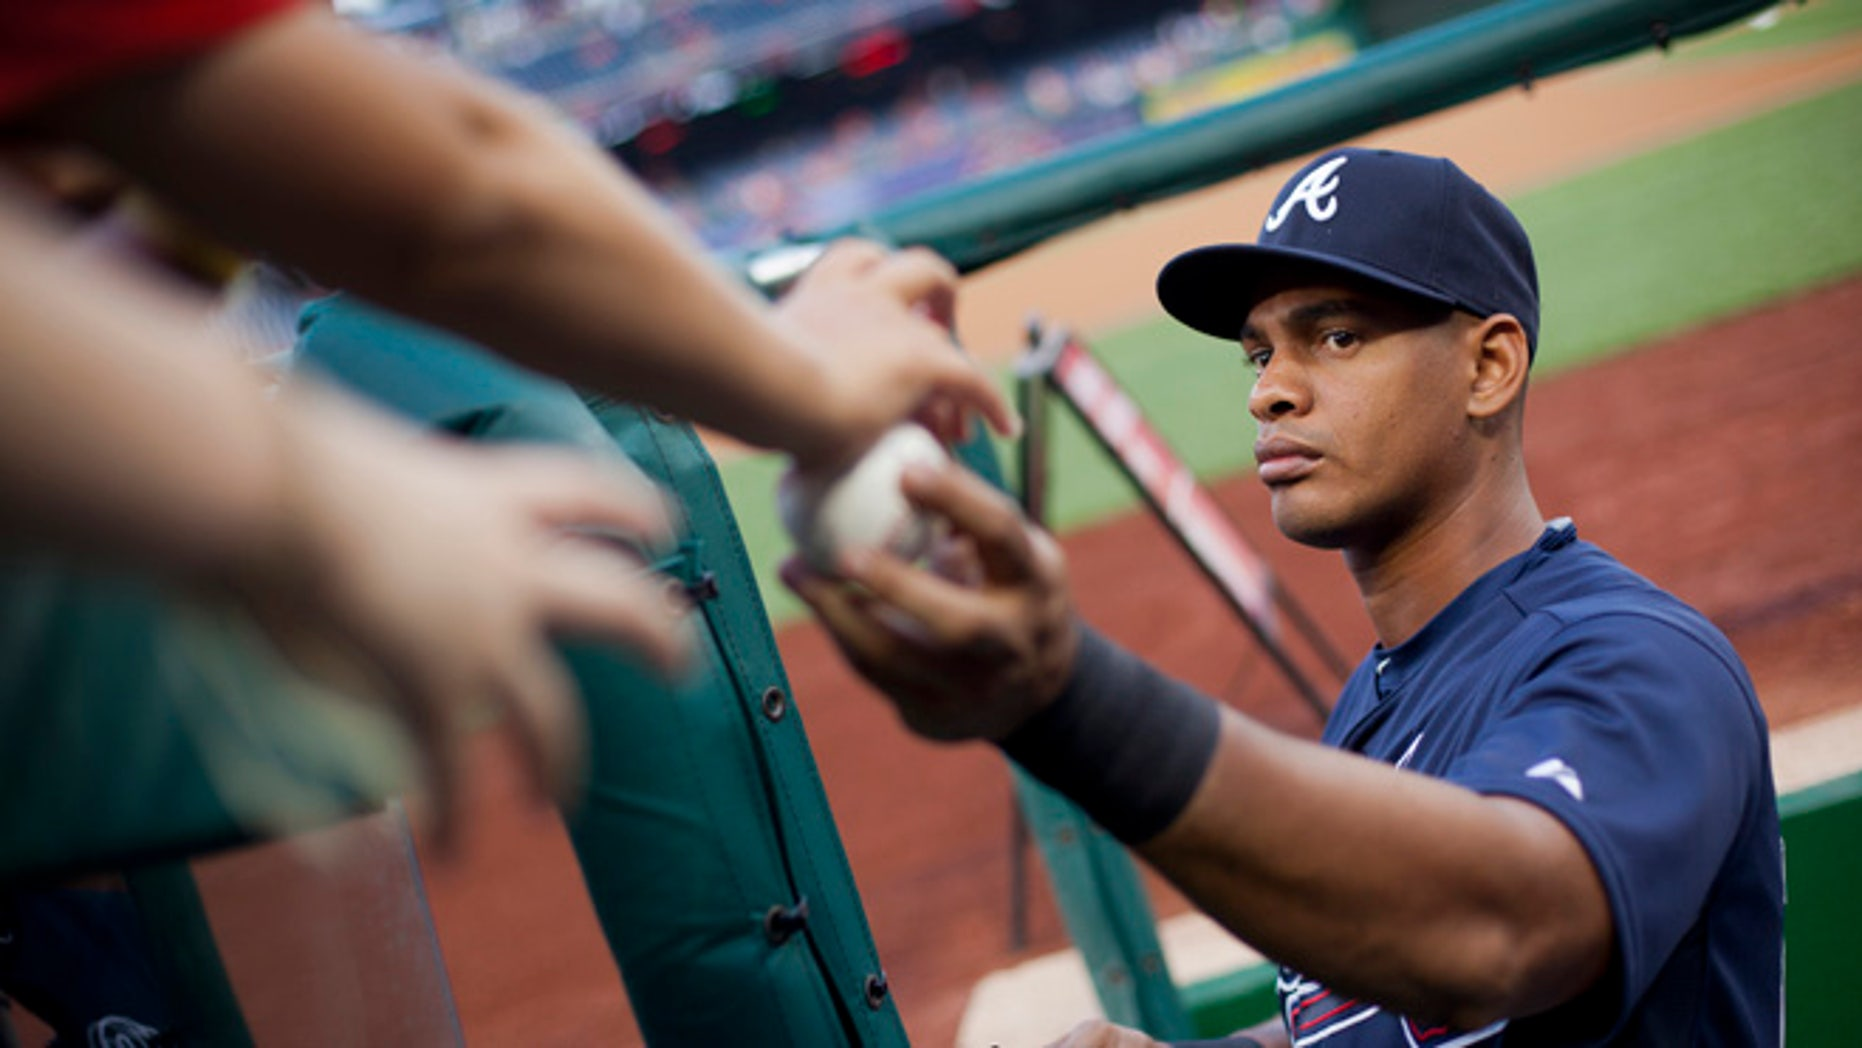 In this photo taken Sept. 3, 2015, Atlanta Braves Hector Olivera returns a ball as he signs autographs prior to start of a baseball game against the Washington Nationals, at Nationals Park in Washington. Police have arrested Olivera after a woman accused him of assault at a hotel outside in Arlington, Va. (AP Photo/Pablo Martinez Monsivais)